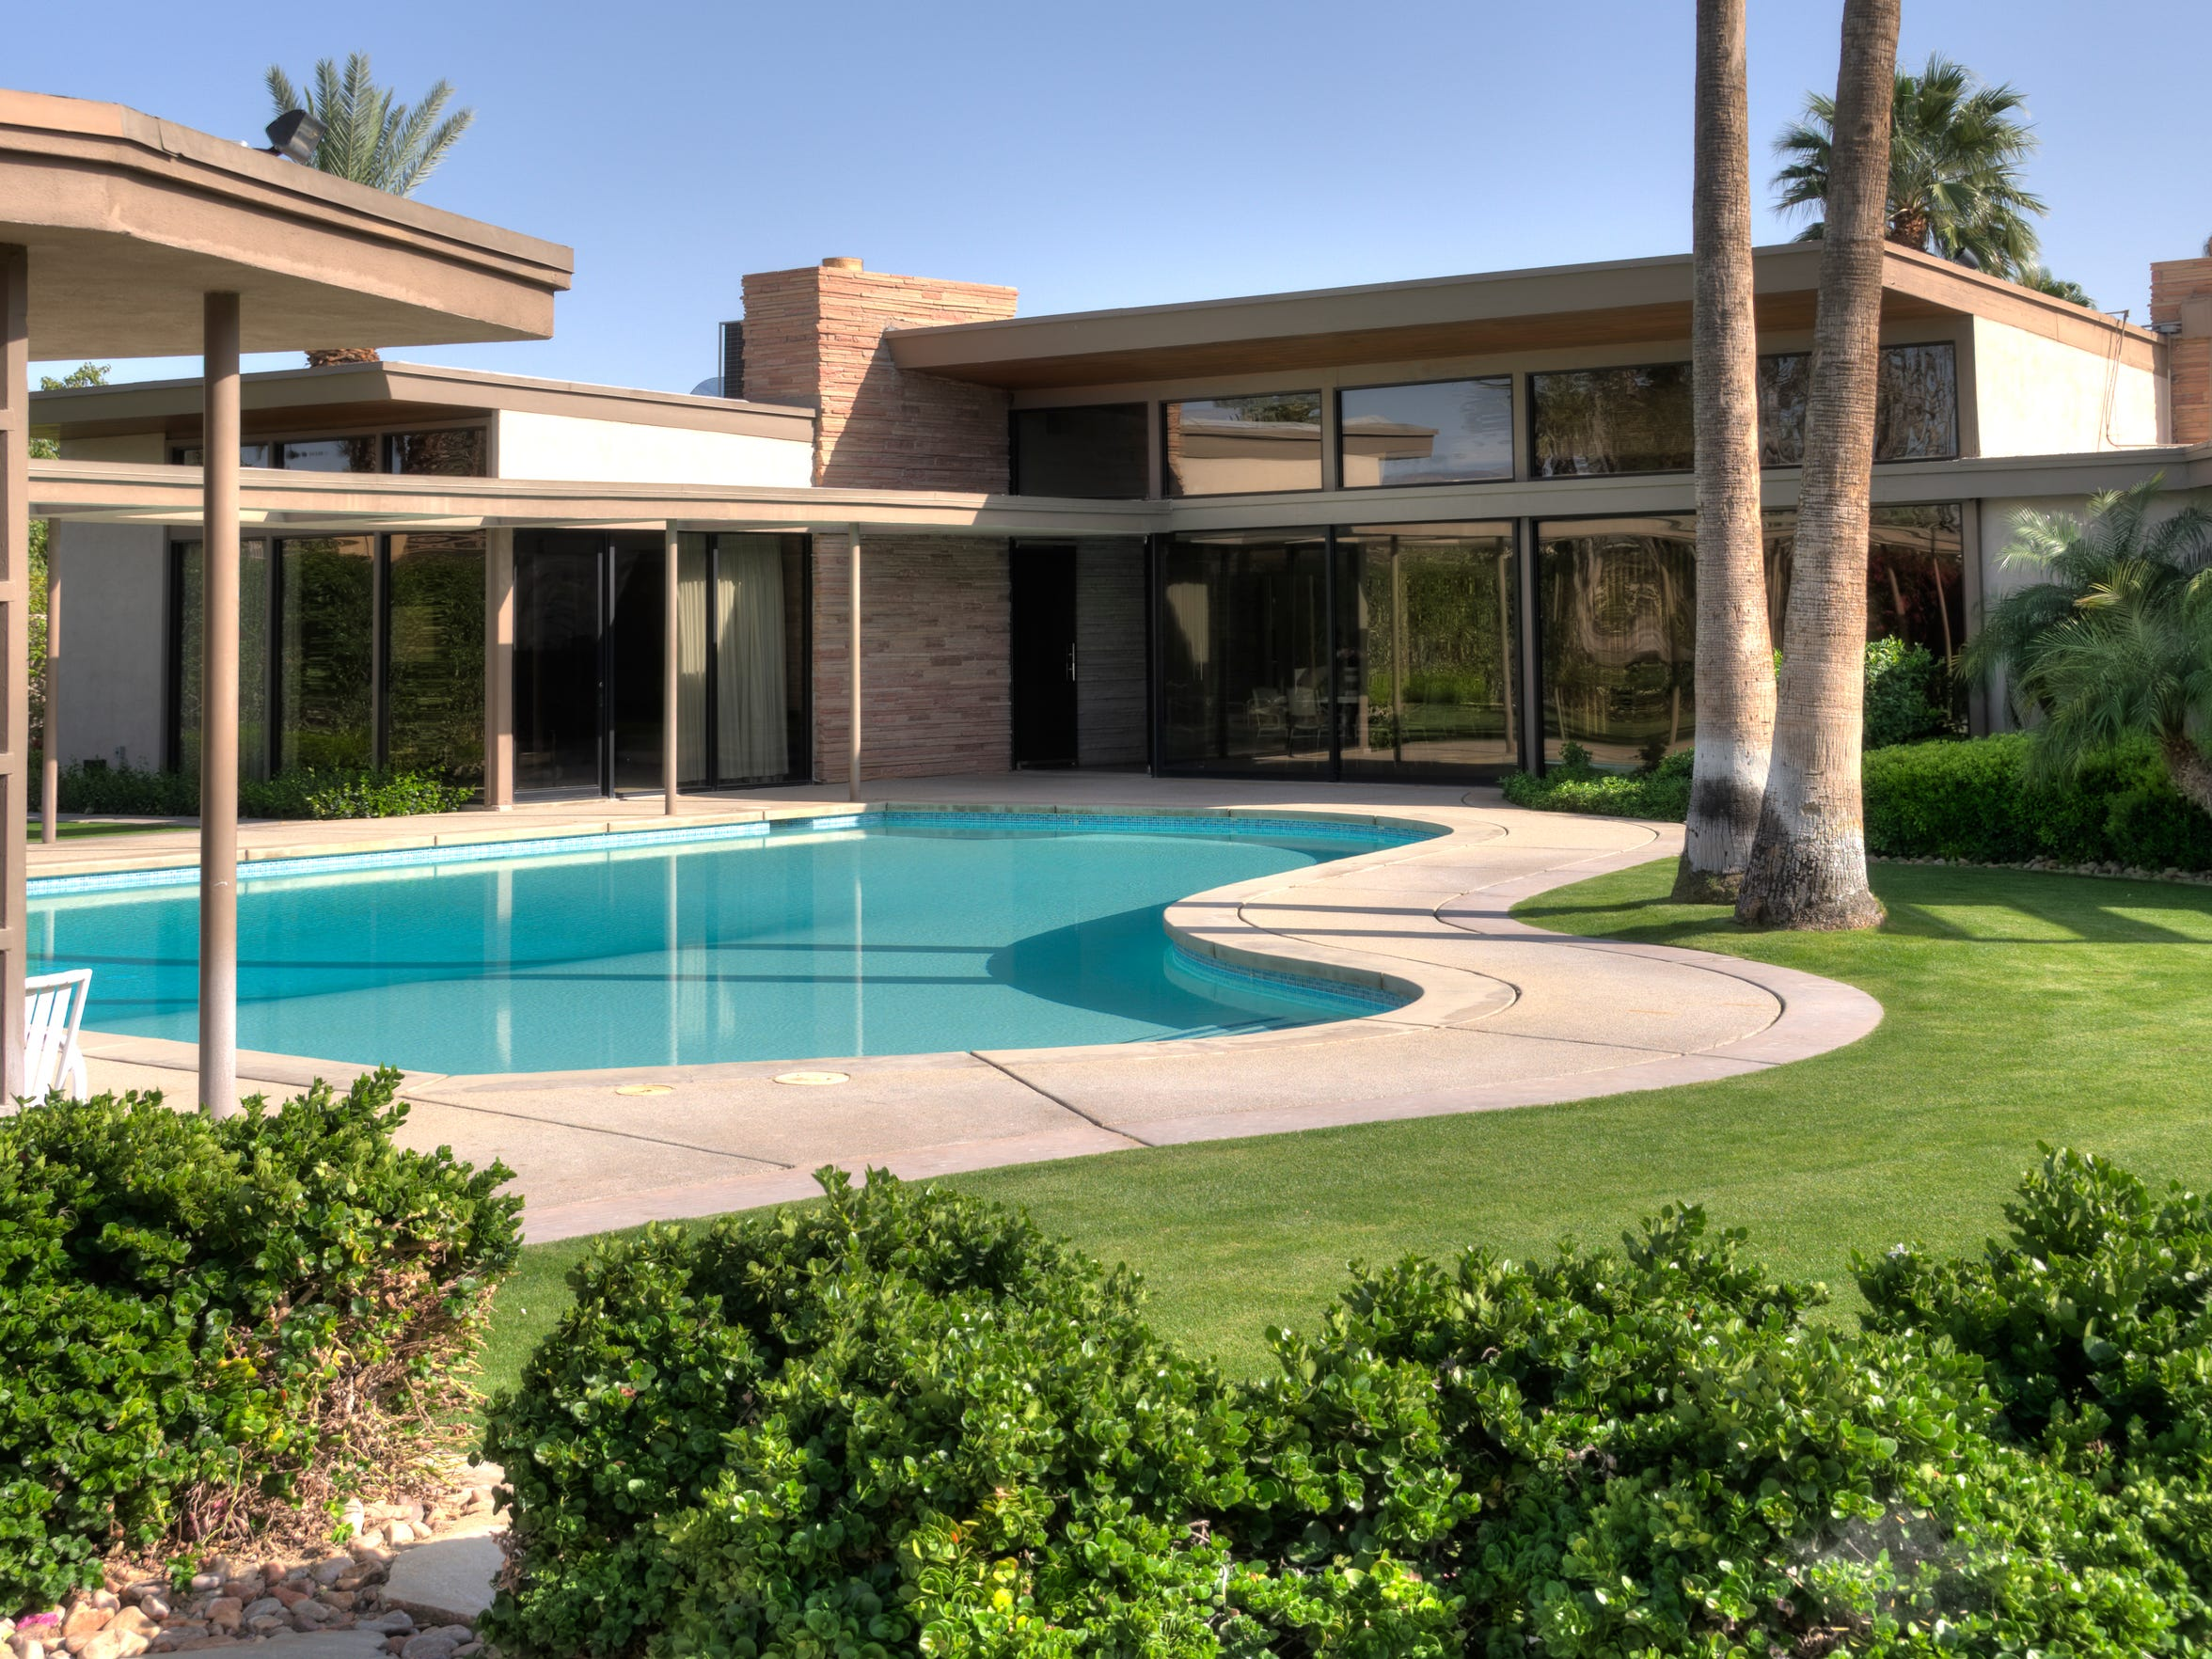 The Sinatra House in Palm Springs.